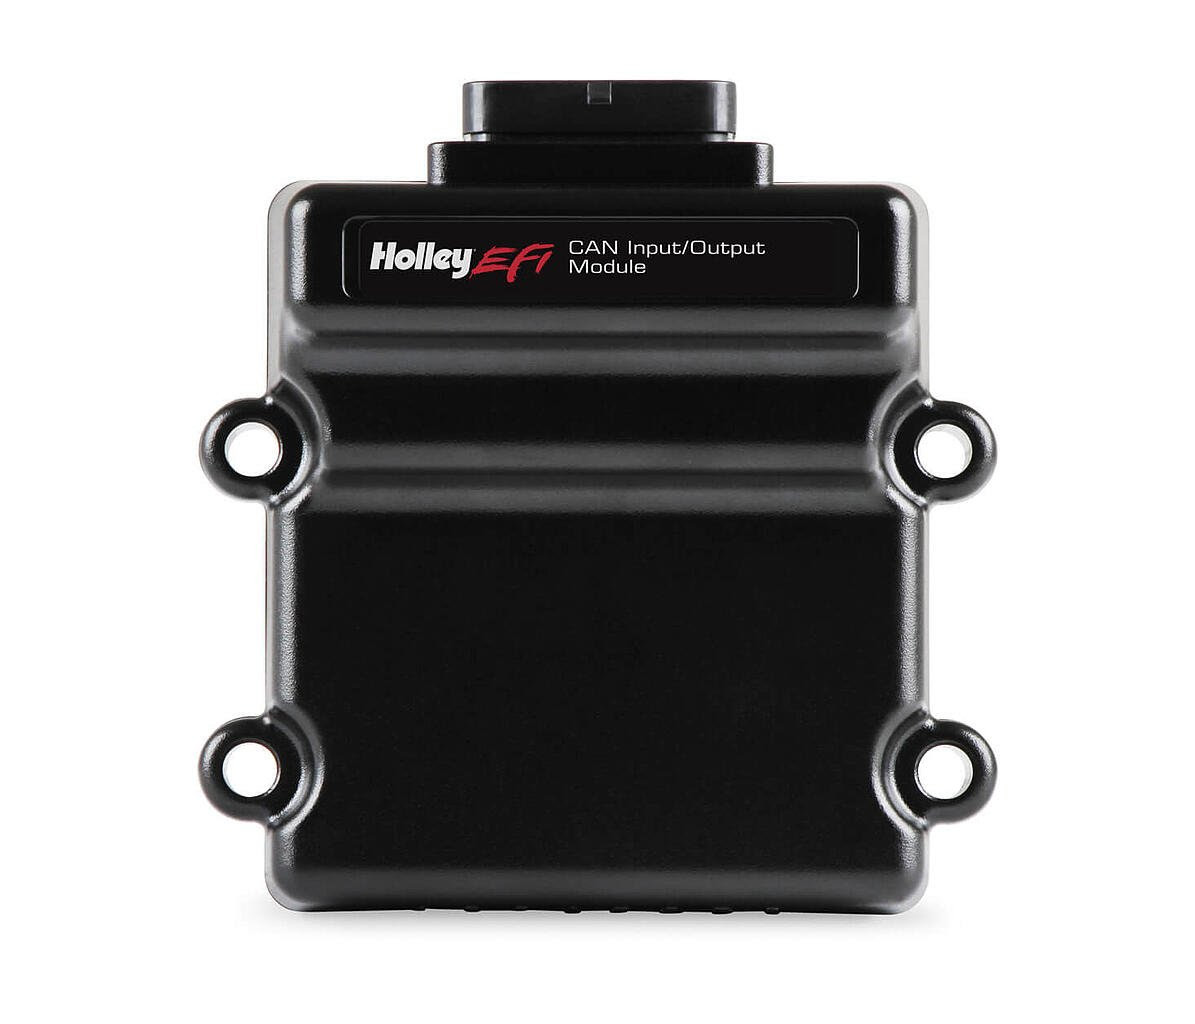 Holley EFI Input/Output CAN Expansion Modules Available For Use With HP, Dominator, Terminator X And XMax Systems